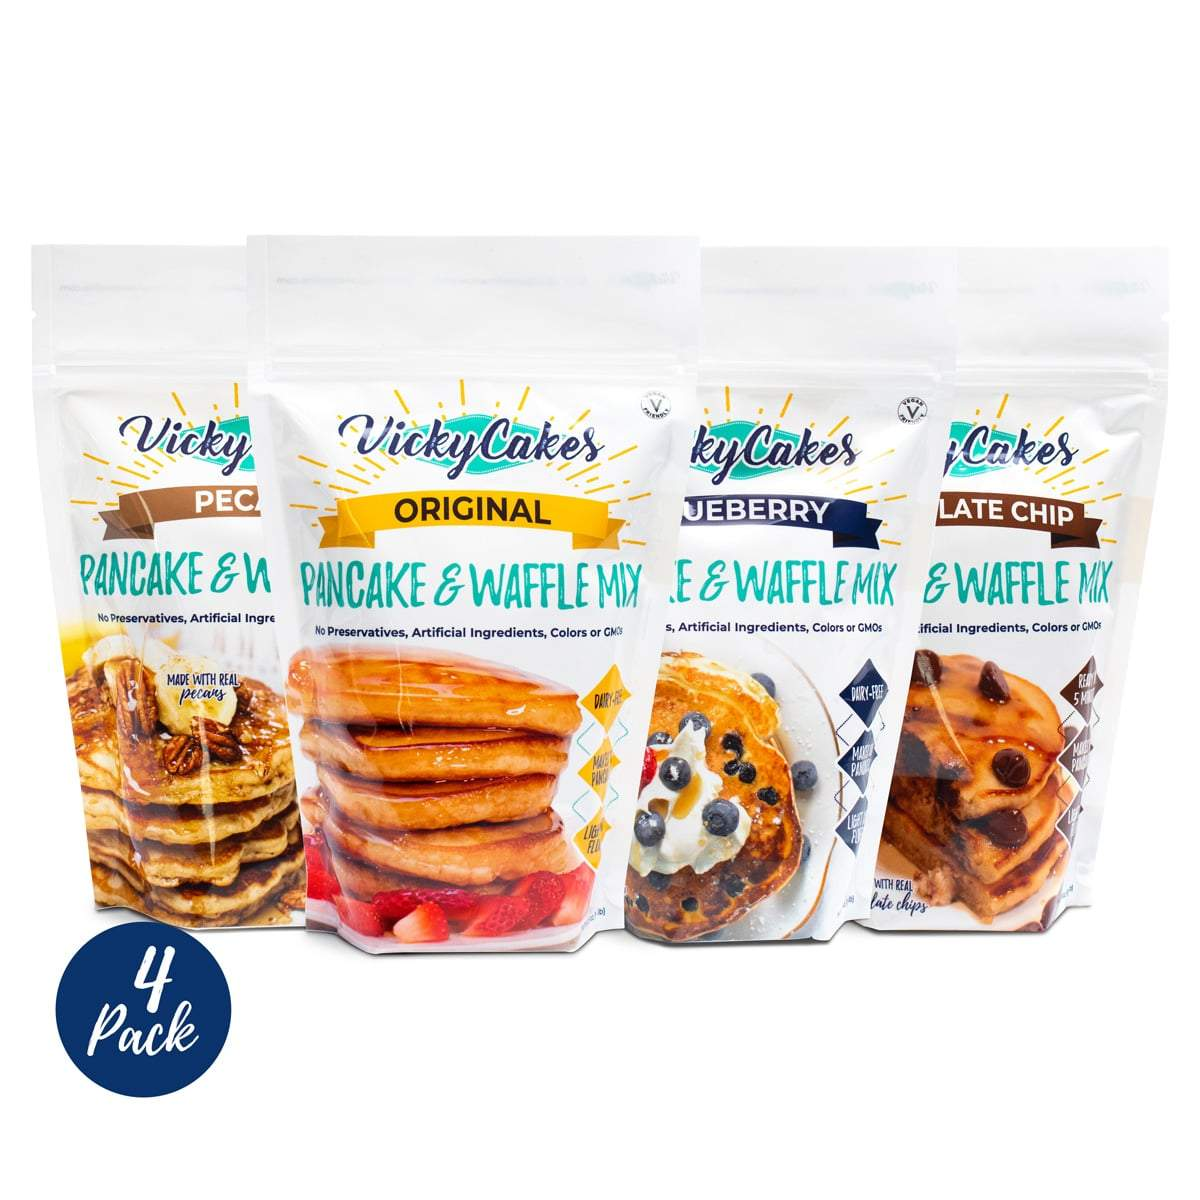 Vicky Cakes Pancake Mix Bundle (Pack of 4) - Original, Blueberry, Pecan, Chocolate Chip